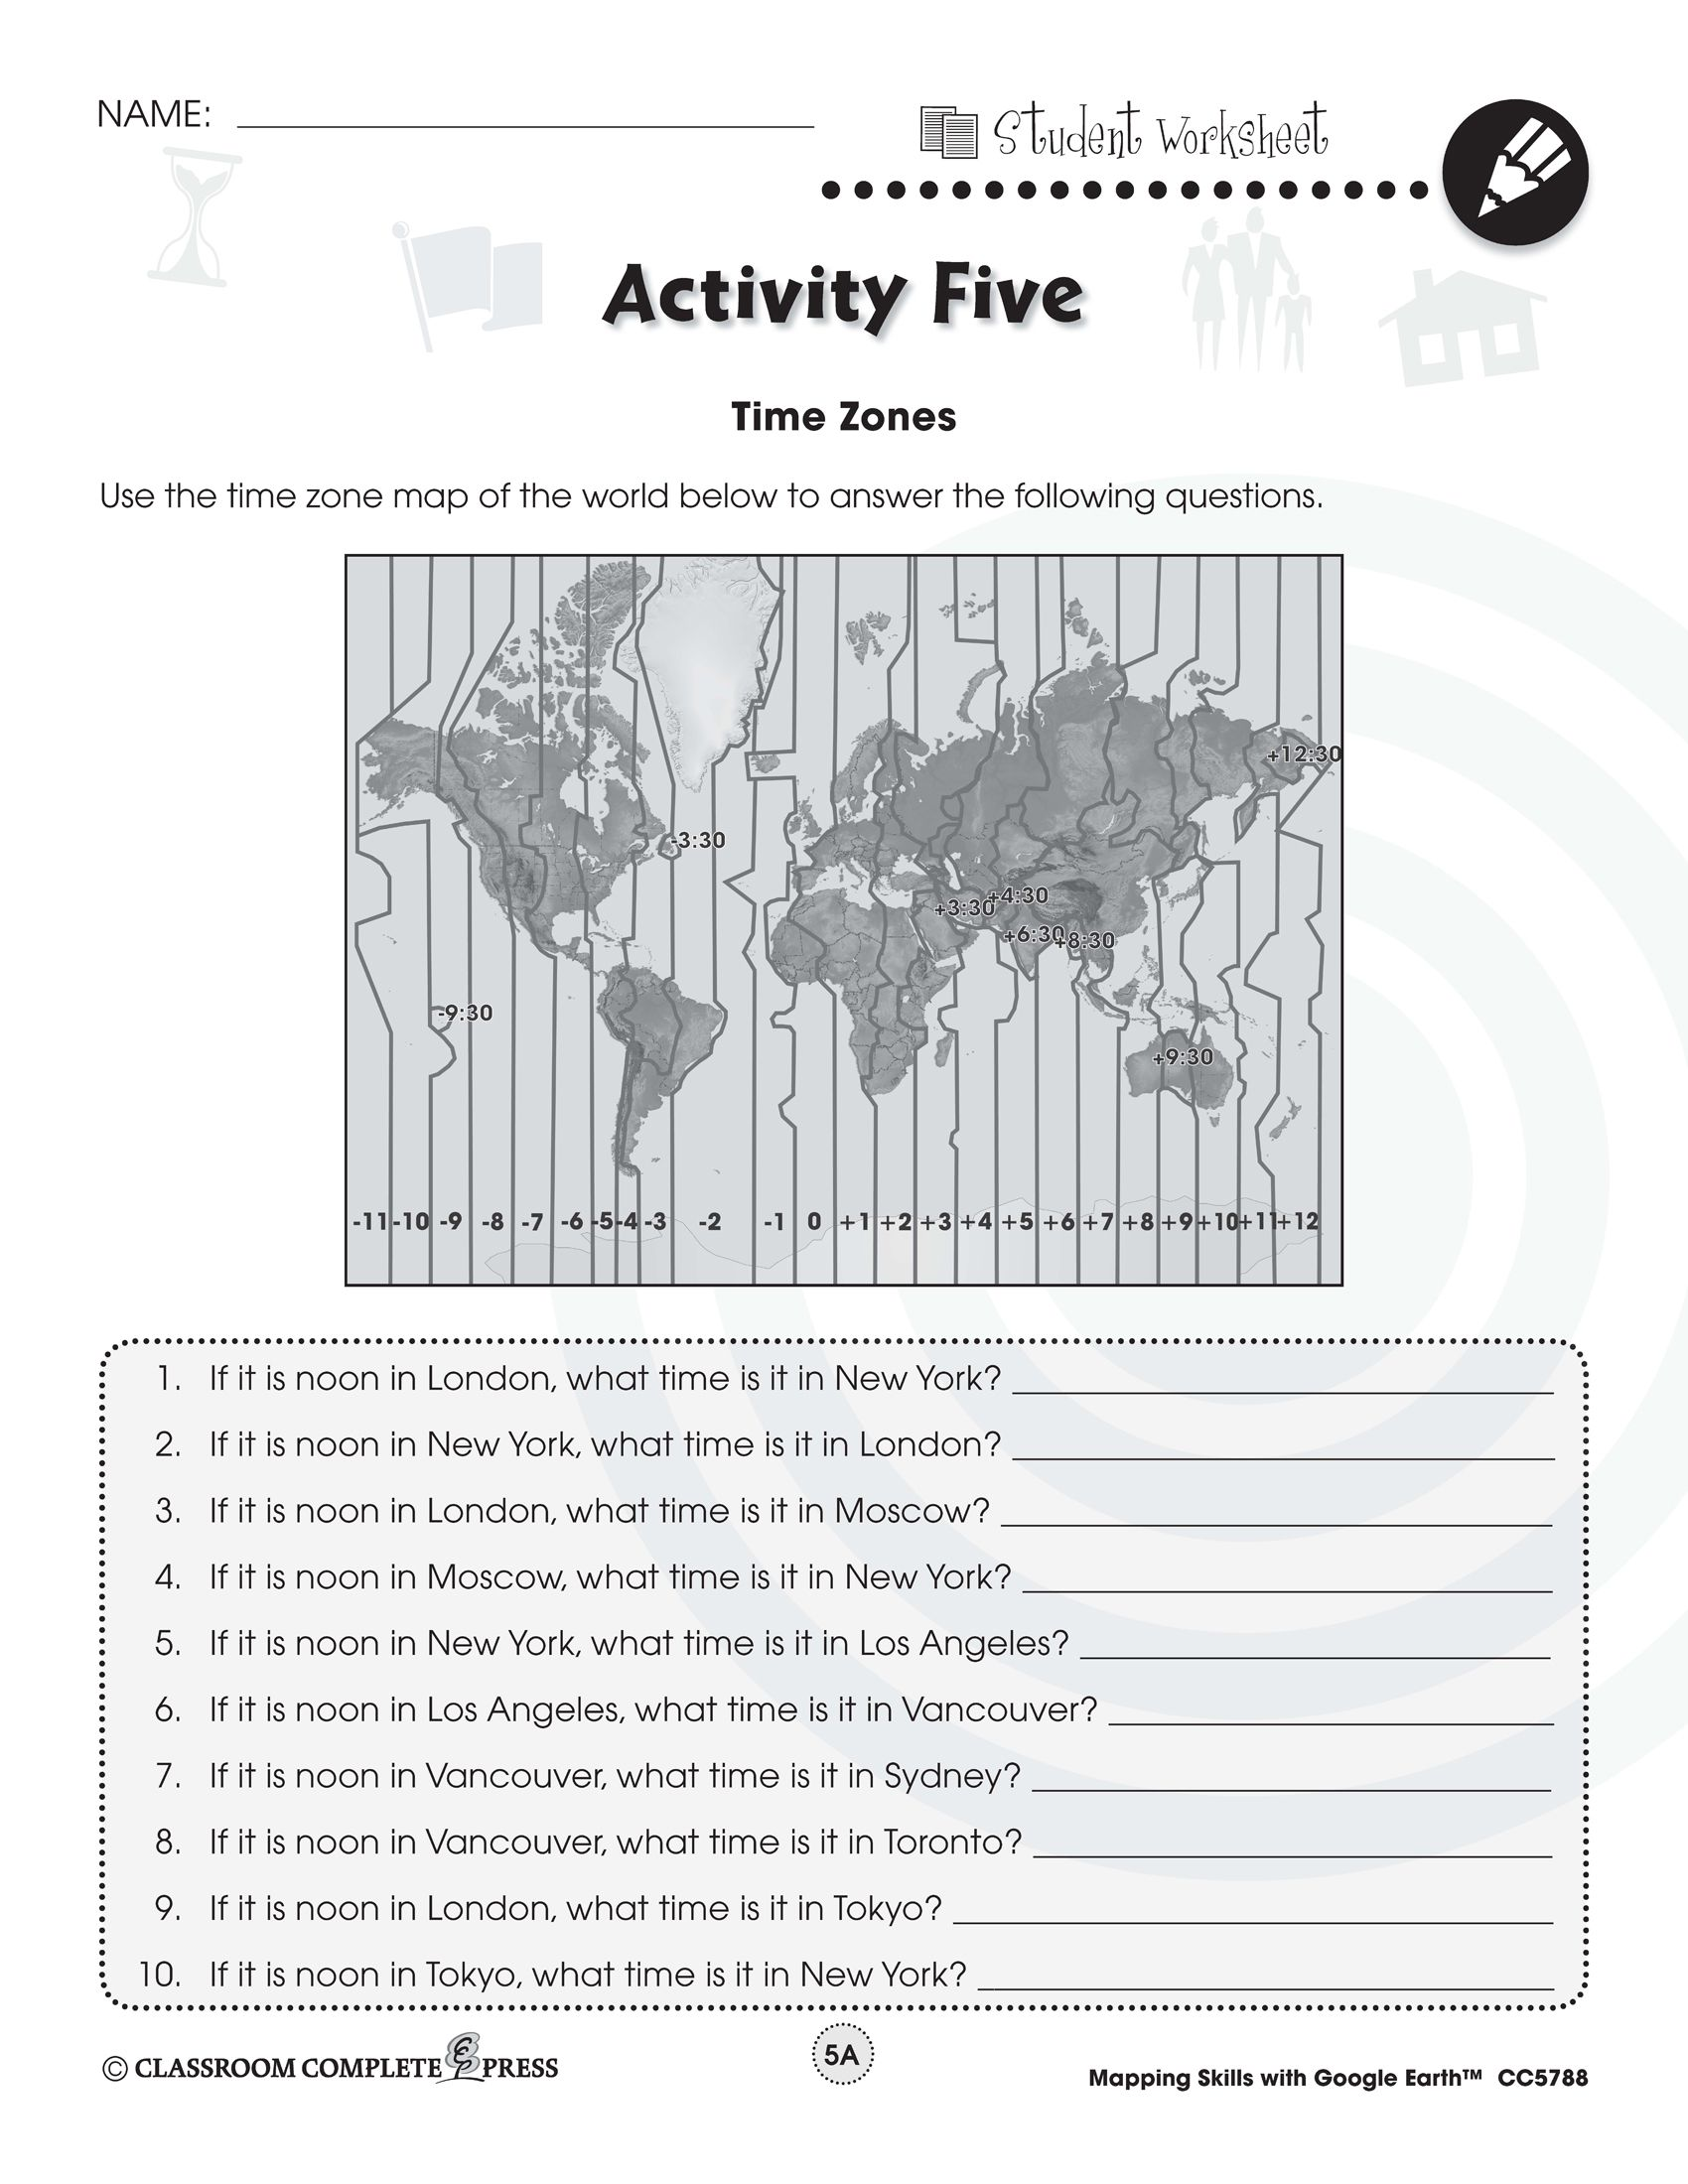 Read Time Zones Around The World With This Free Activity